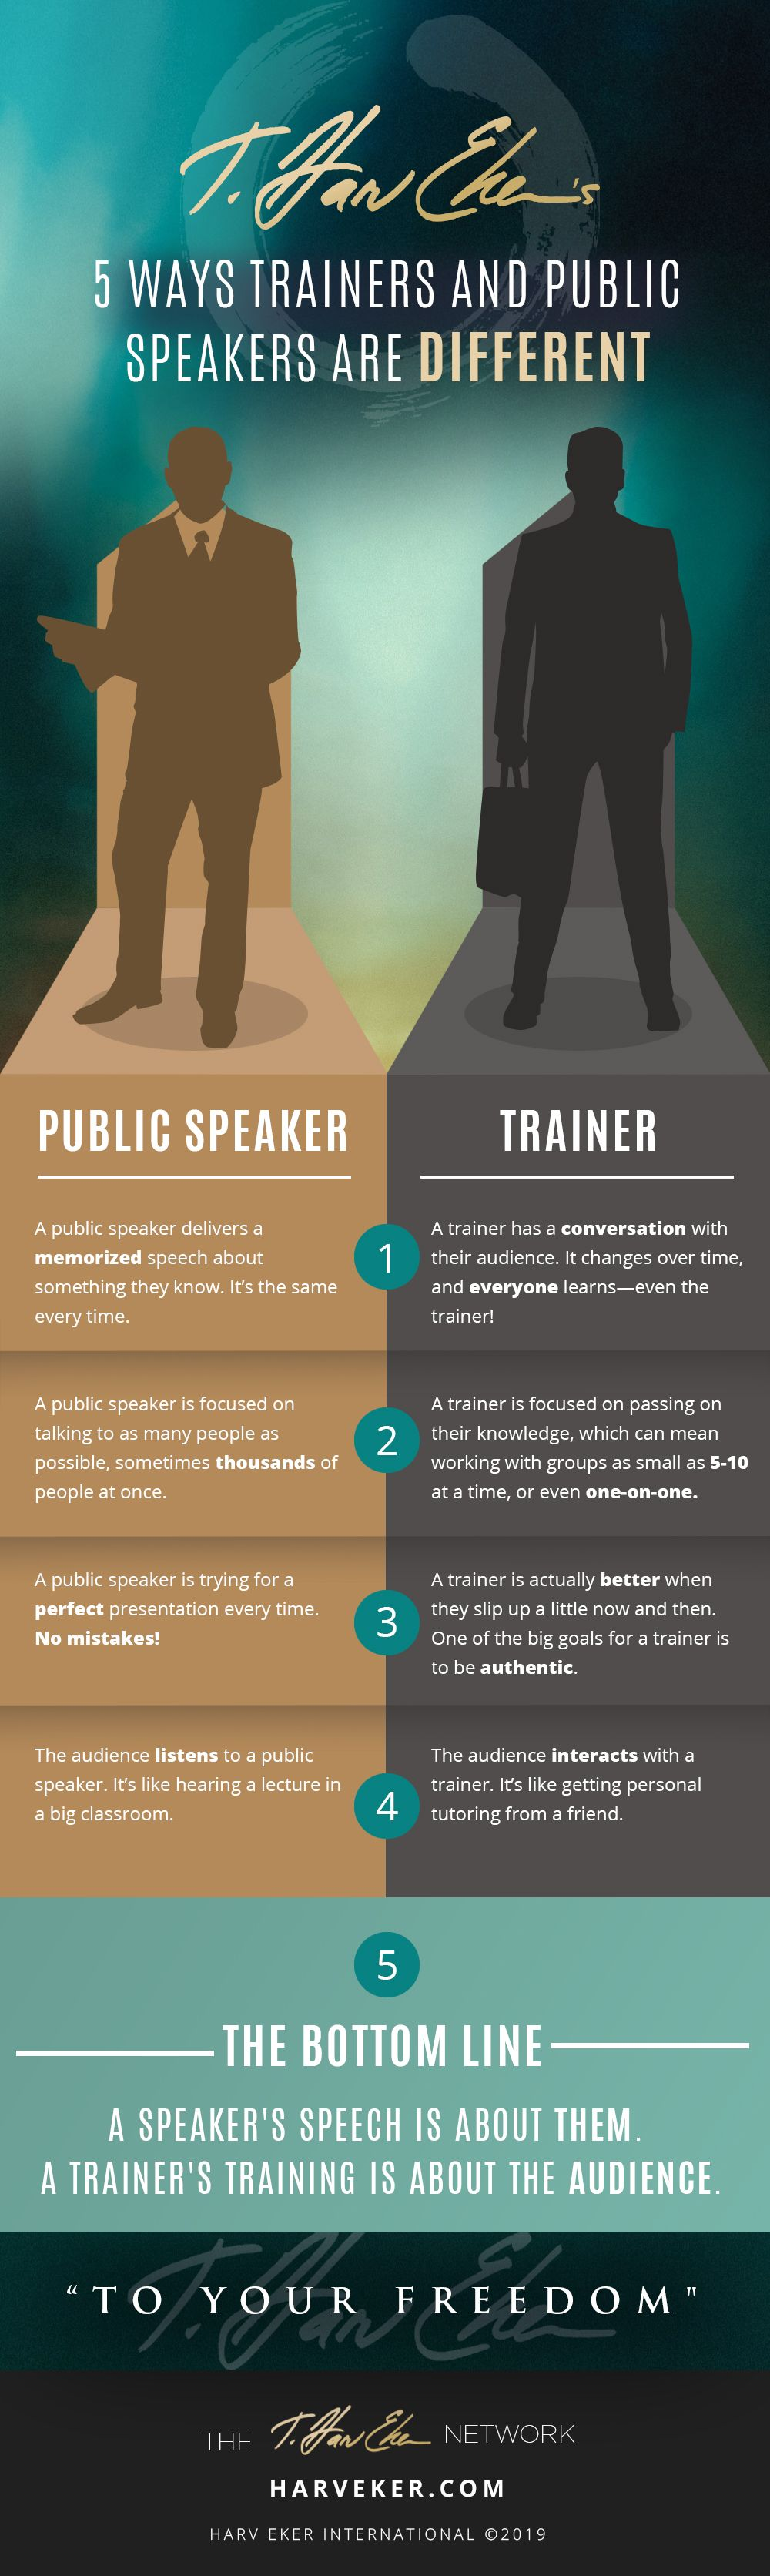 Help! I Want To Be A Trainer… But I Hate Public Speaking!